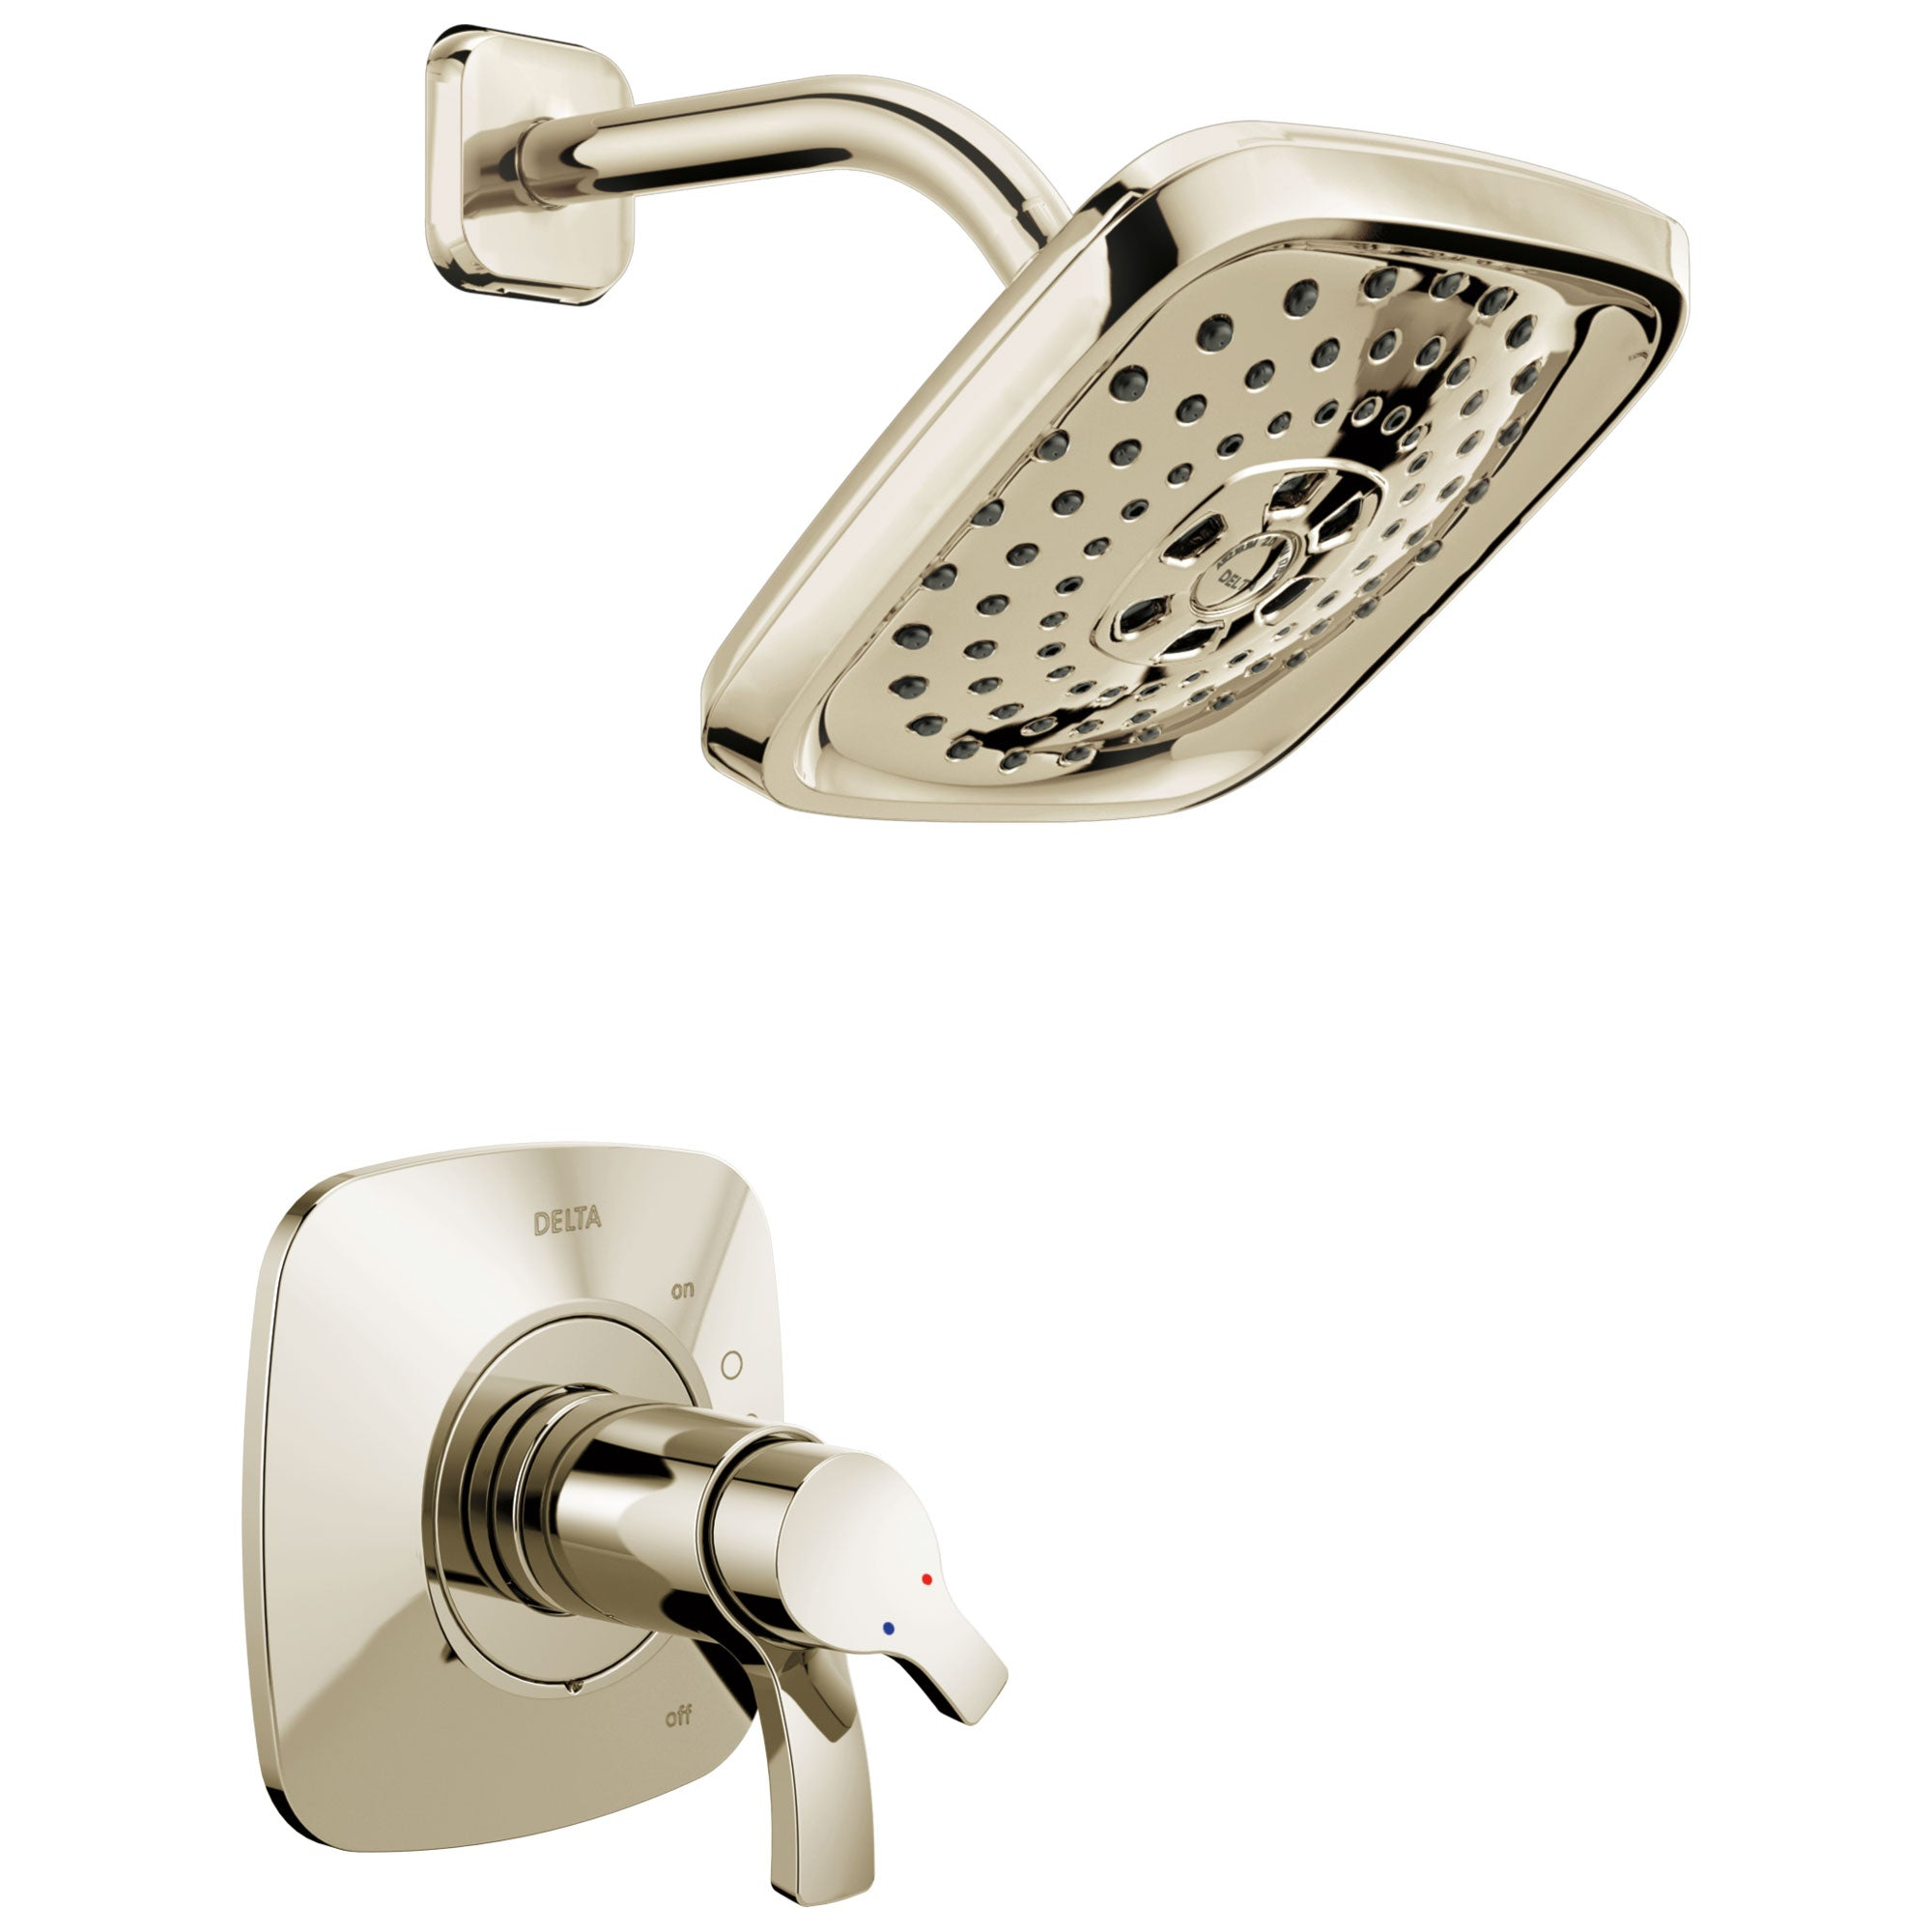 Delta Tesla Collection Polished Nickel TempAssure 17T Series Modern Dual Temp and Pressure Control Shower Faucet Includes Rough-in Valve with Stops D1939V